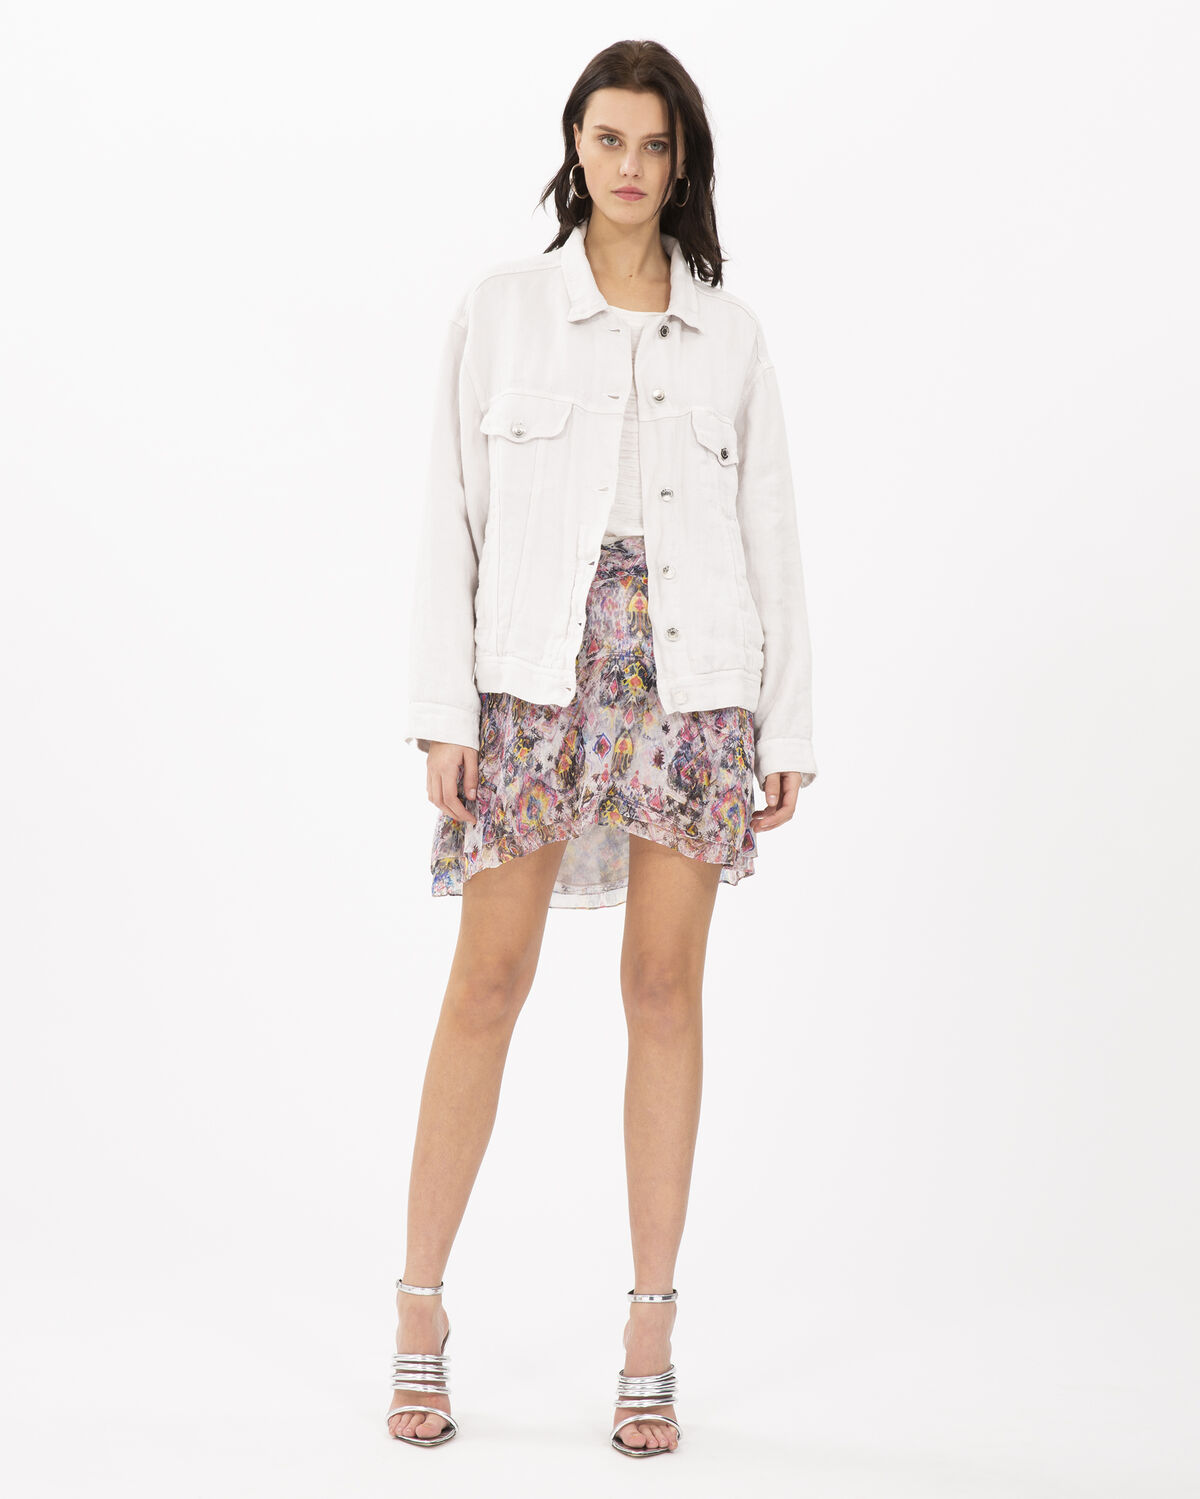 Heed Jacket Chalk by IRO Paris